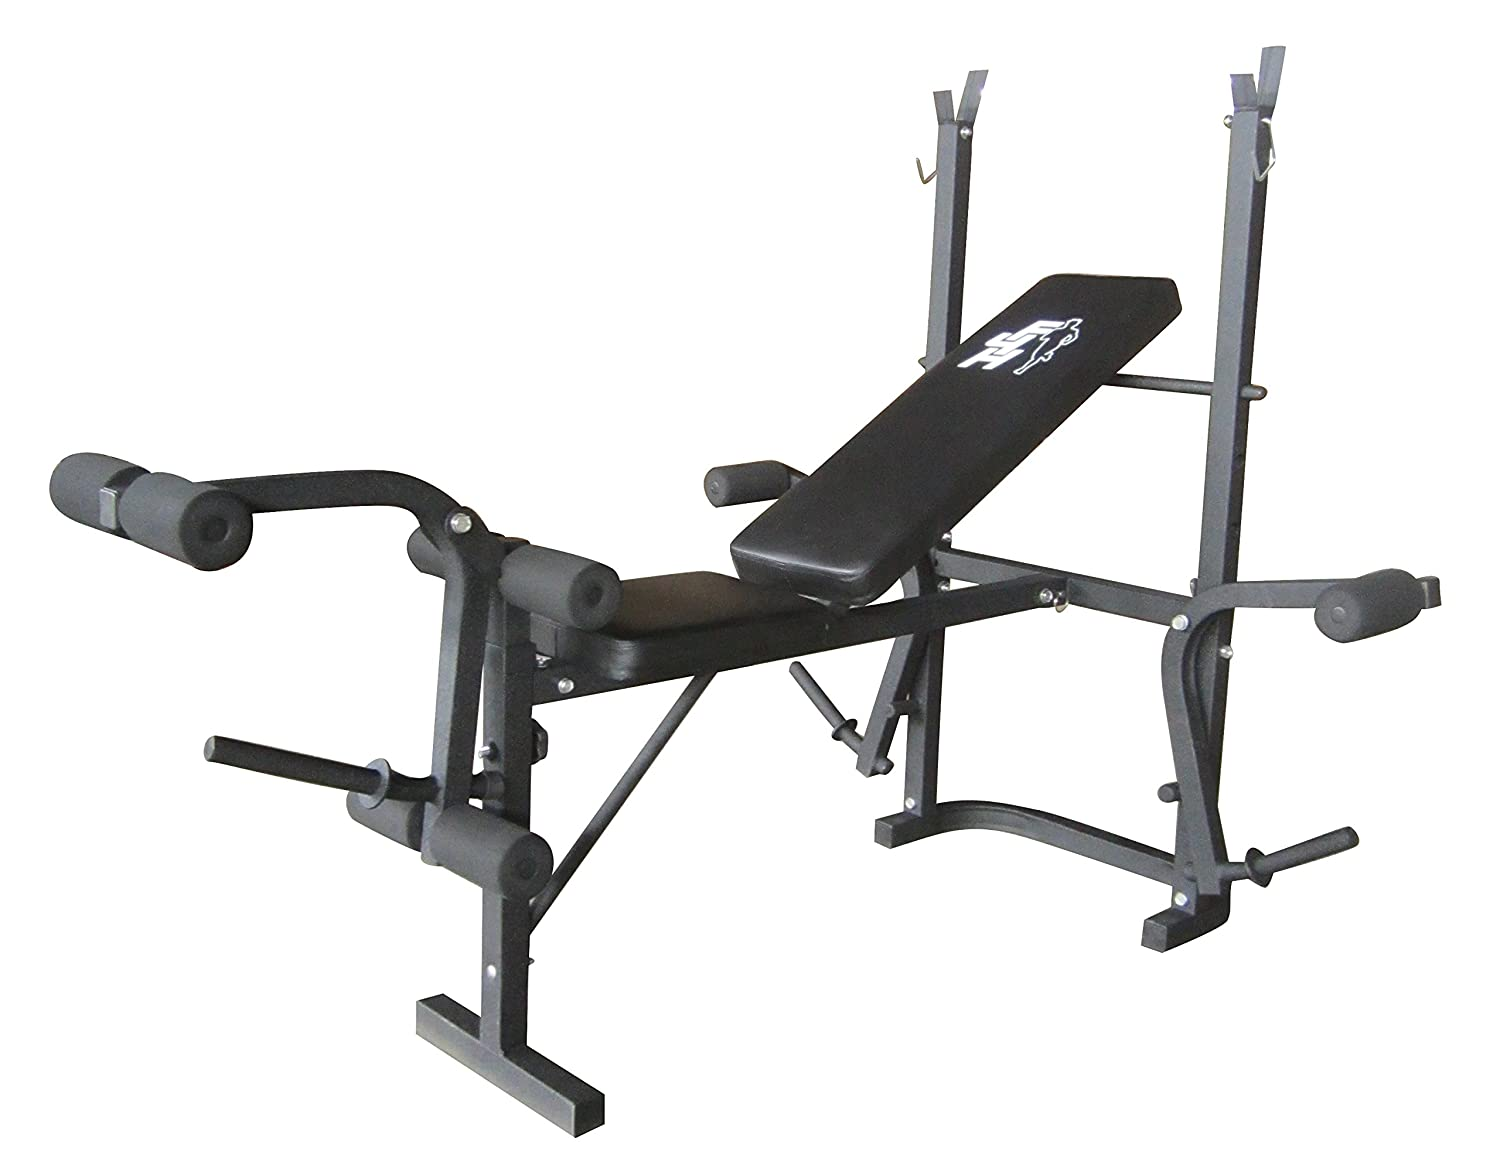 en golds weight benches gym product exercise best free gold ca s accessories buy canada bench